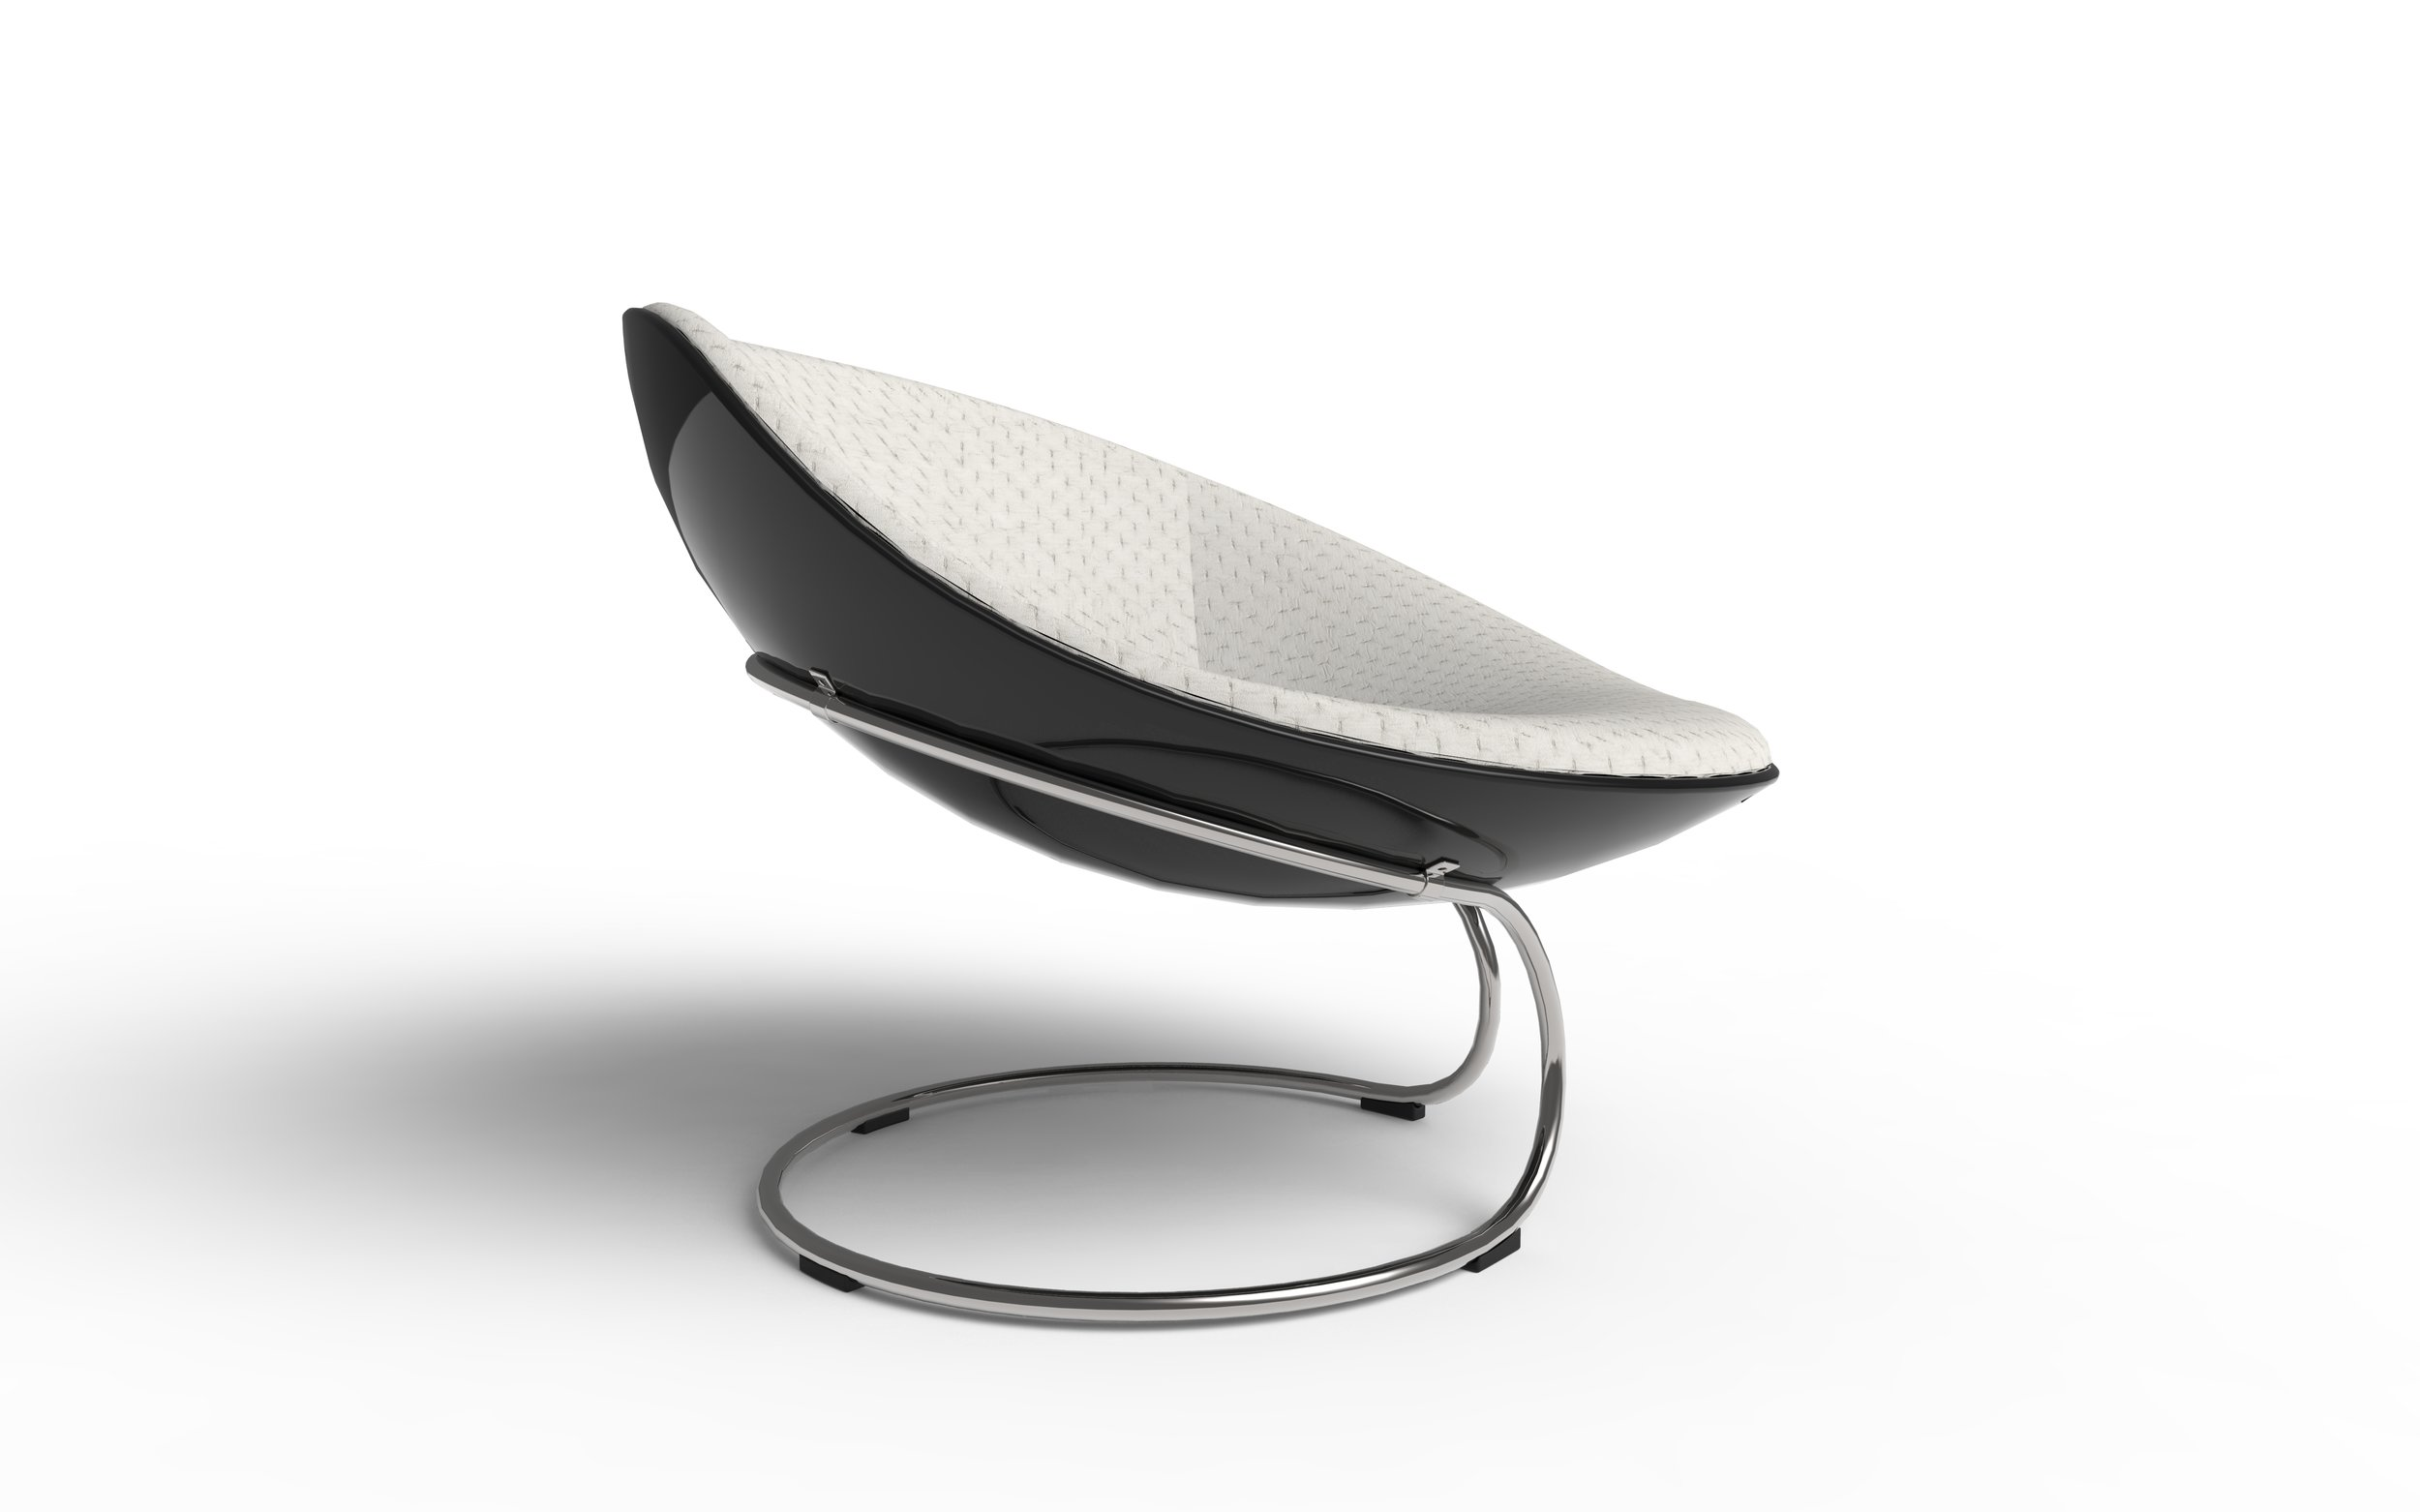 Owan has an asymmetric curvy shape on its side. It's designed with one arm-rest being lower than the other side. This asymmetry supports the user's flexibility of body postures and movements. -